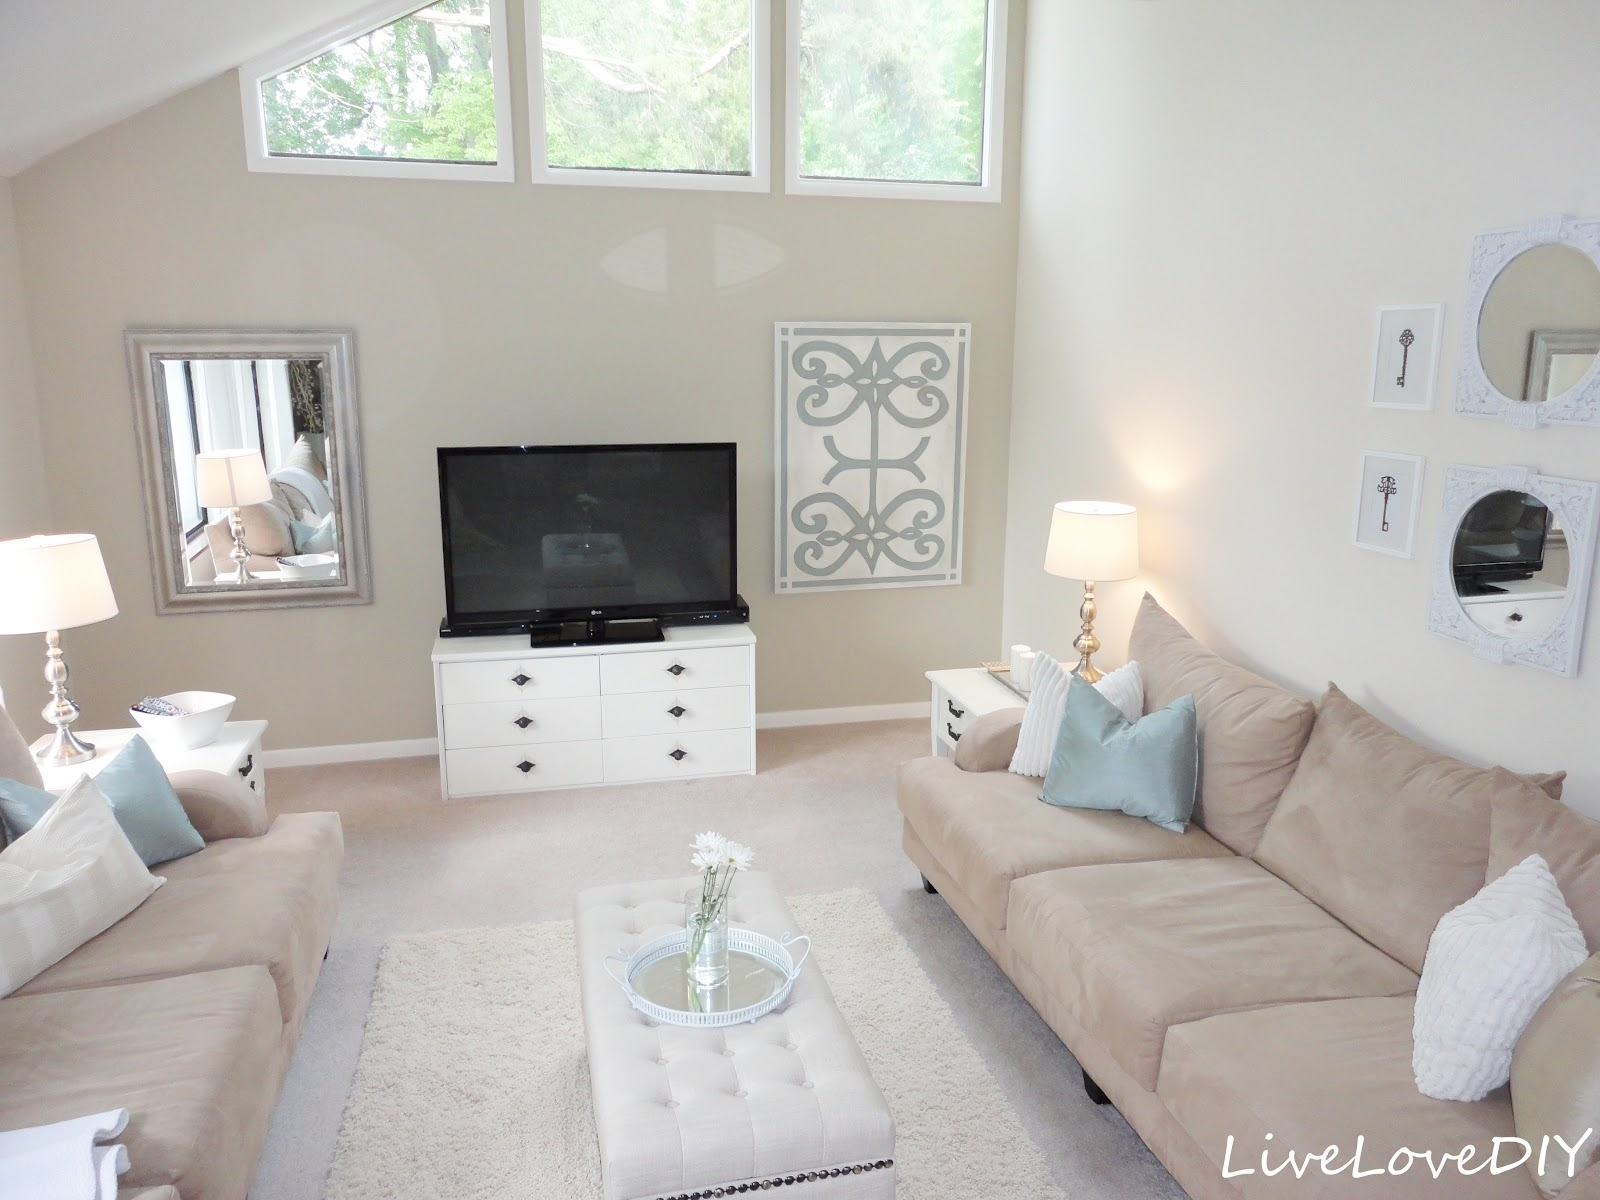 Livelovediy: Living Room Reveal & Diy Wall Art With Regard To Current Neutral Color Wall Accents (View 7 of 15)